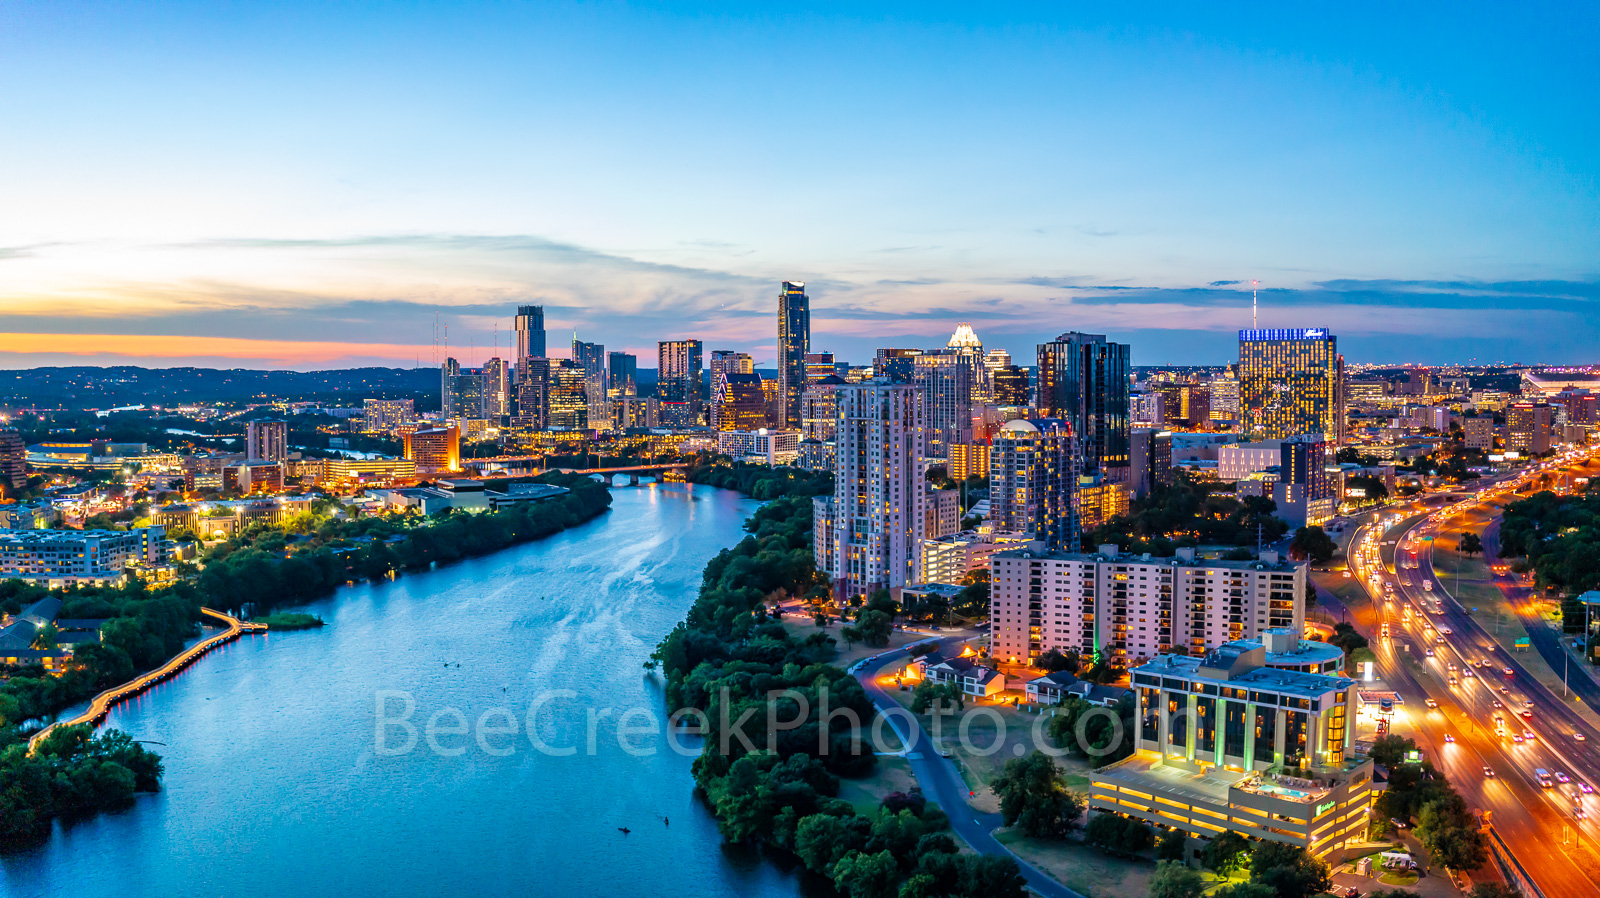 Austin Aerial Skyline Twilight View, Austin skyline, aerial, drone, Austin, night, twilight, dark, Lady Bird Lake, high rise buildings, architecture, boardwalk lights, shoreline, lake, IH35, UT, Erwin